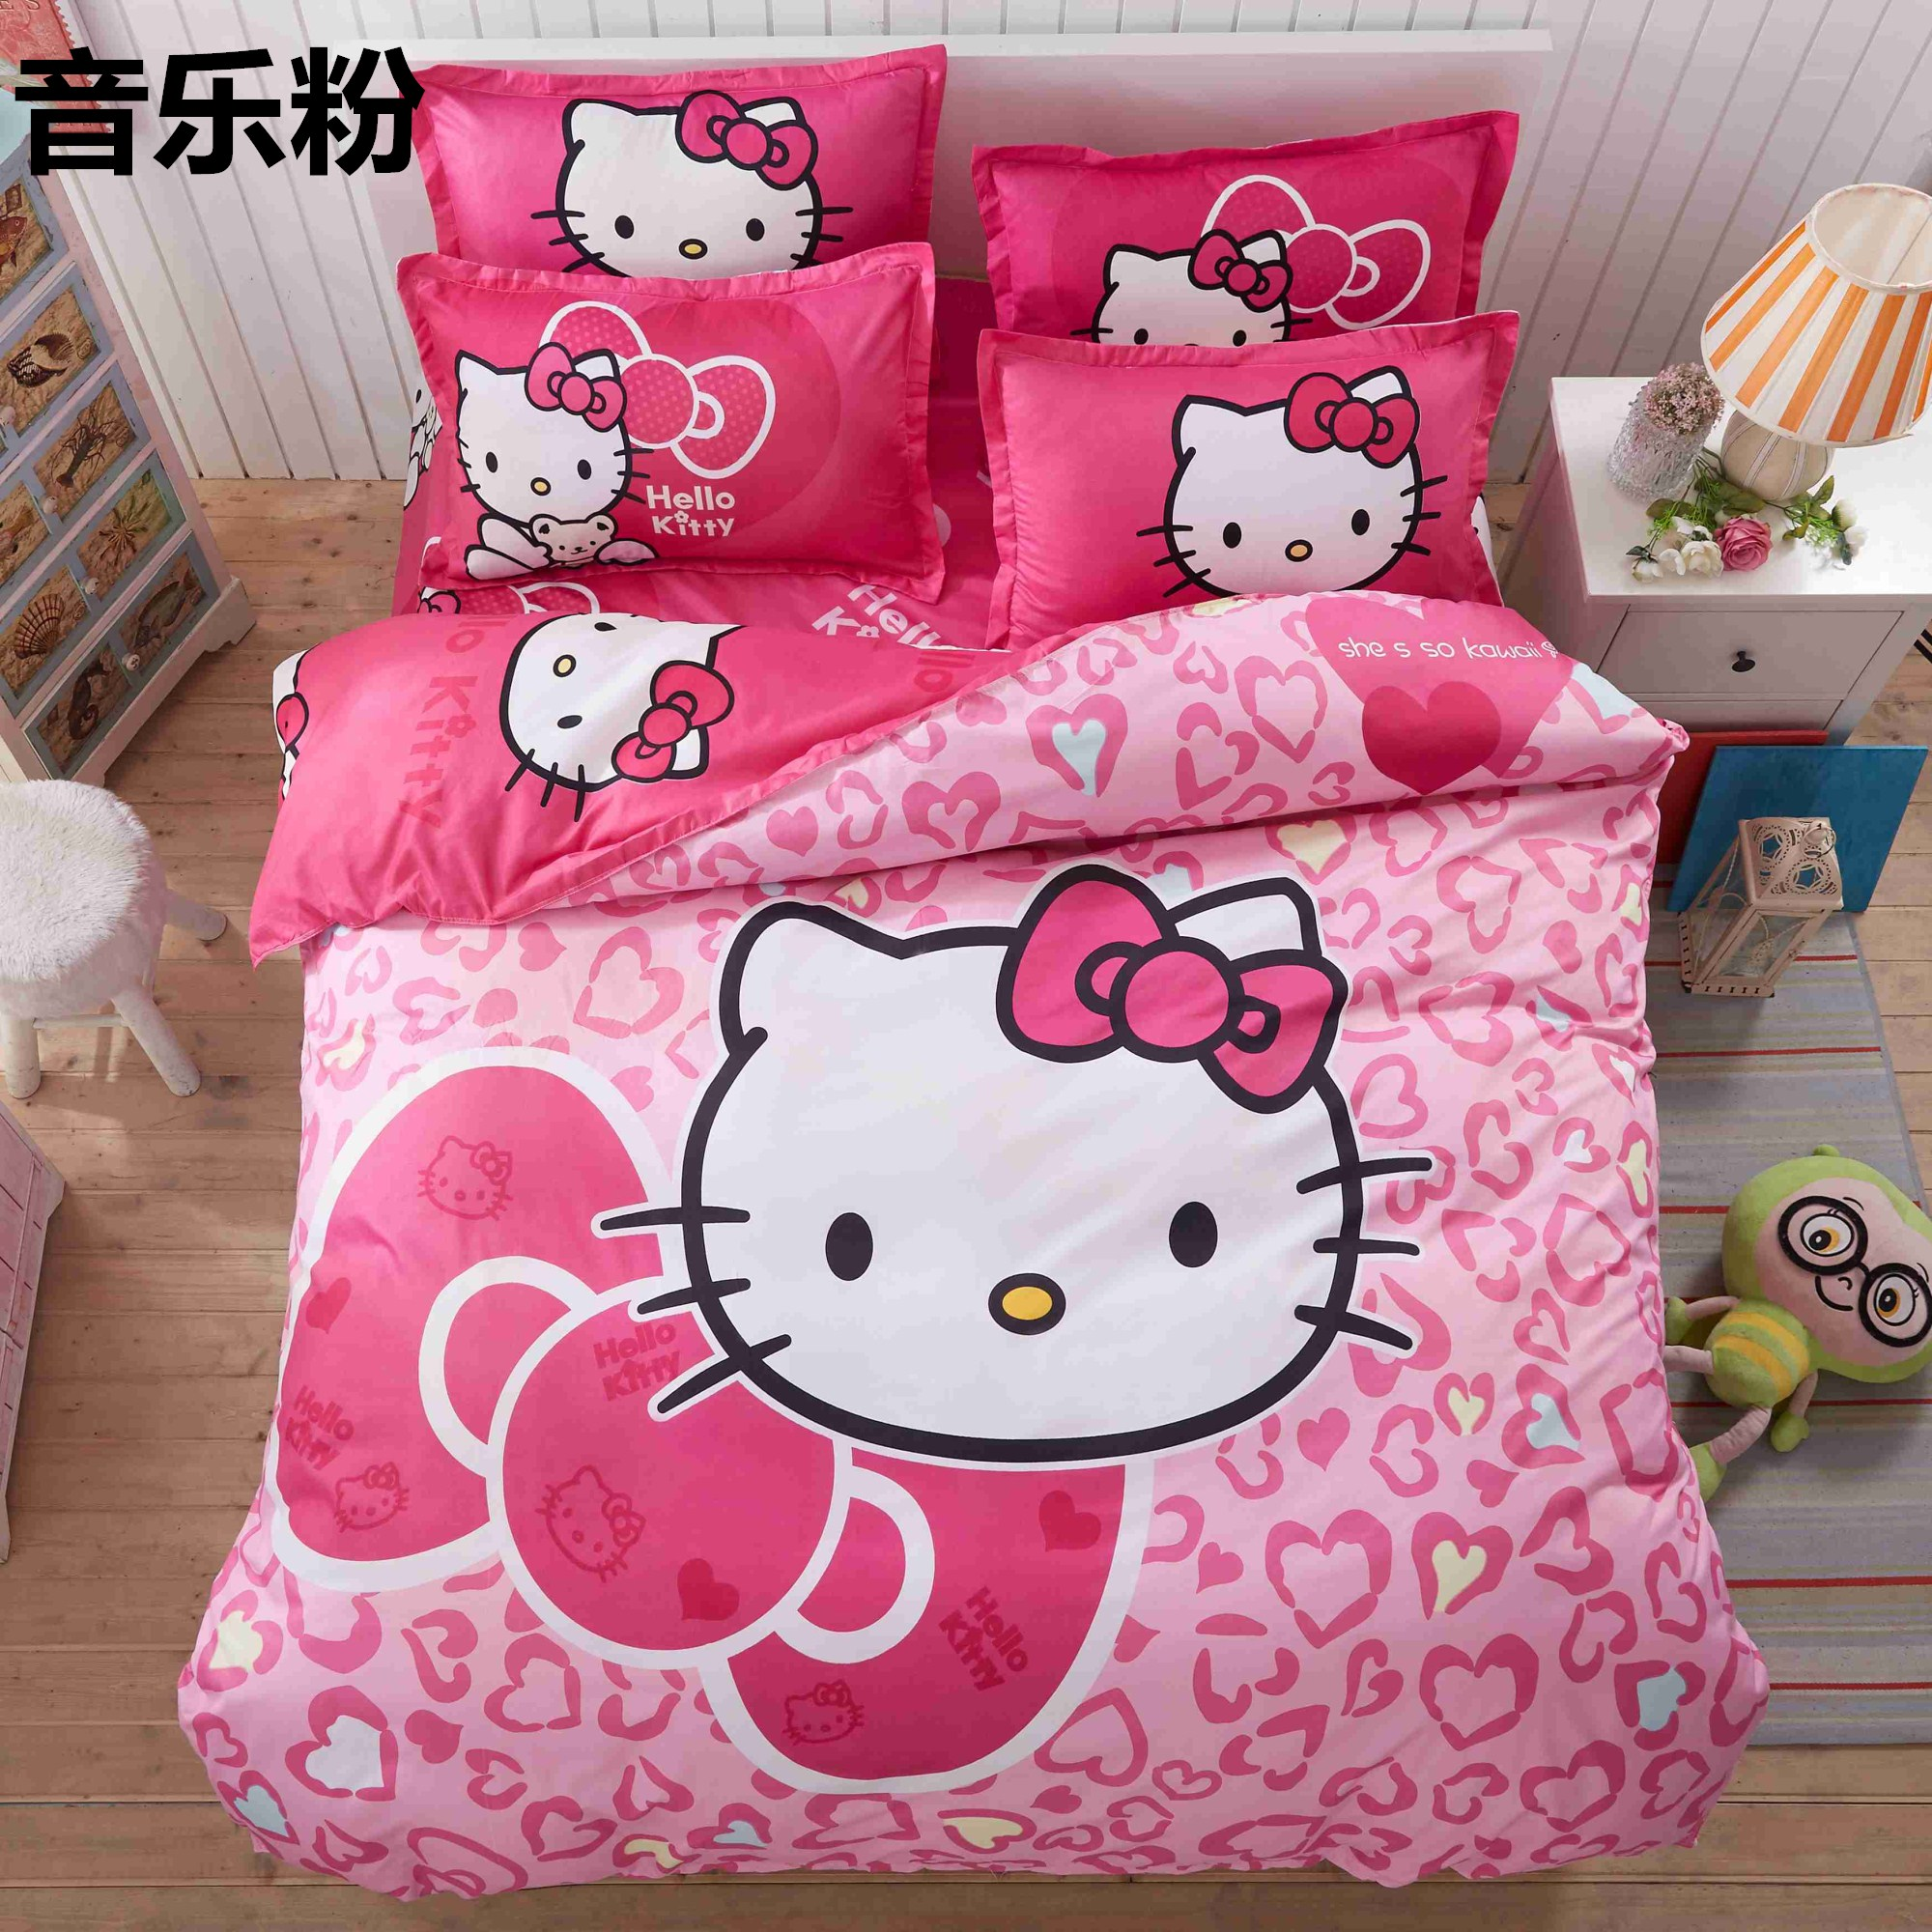 Pink hello kitty bedsheet - Home Textile Hello Kitty Bedding Set Cartoon Cotton Bed Set For Kids 4pcs Include Duvet Cover